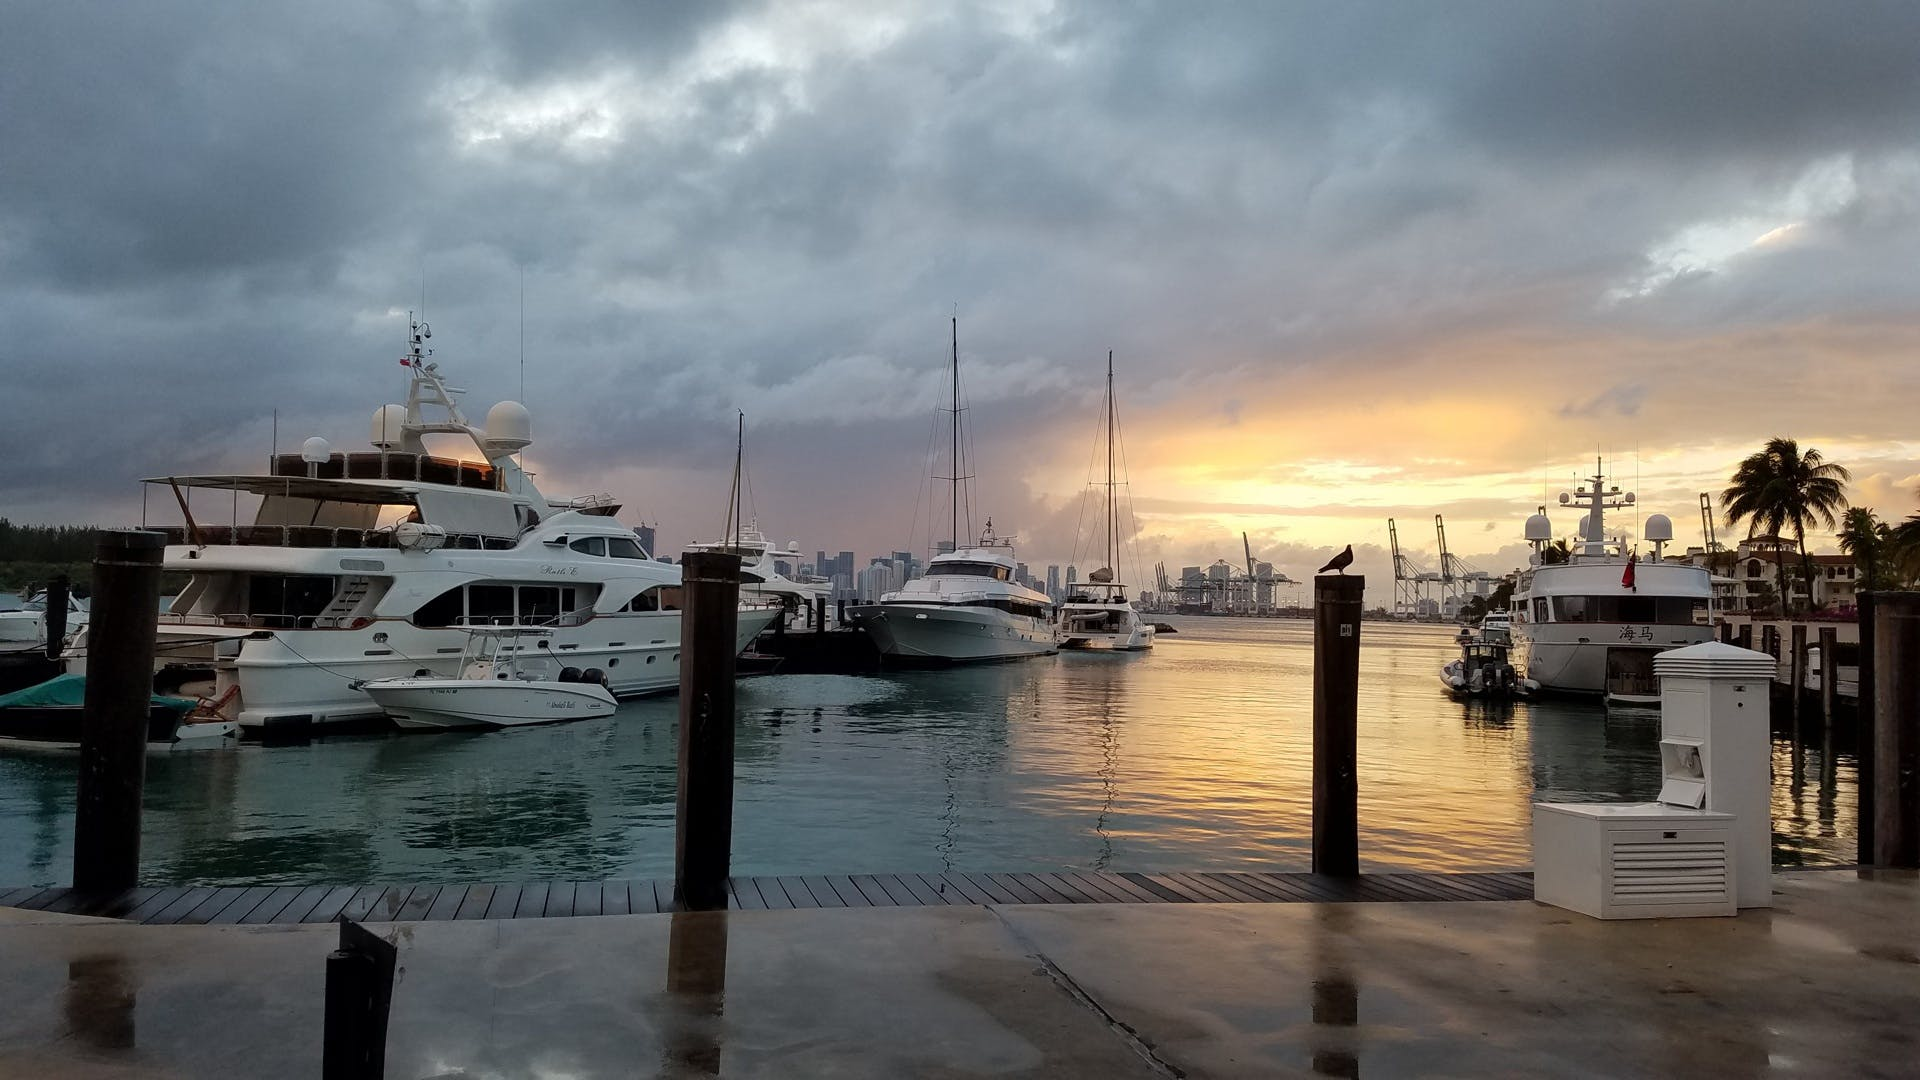 Free stock photo of sea, sunset, clouds, boats